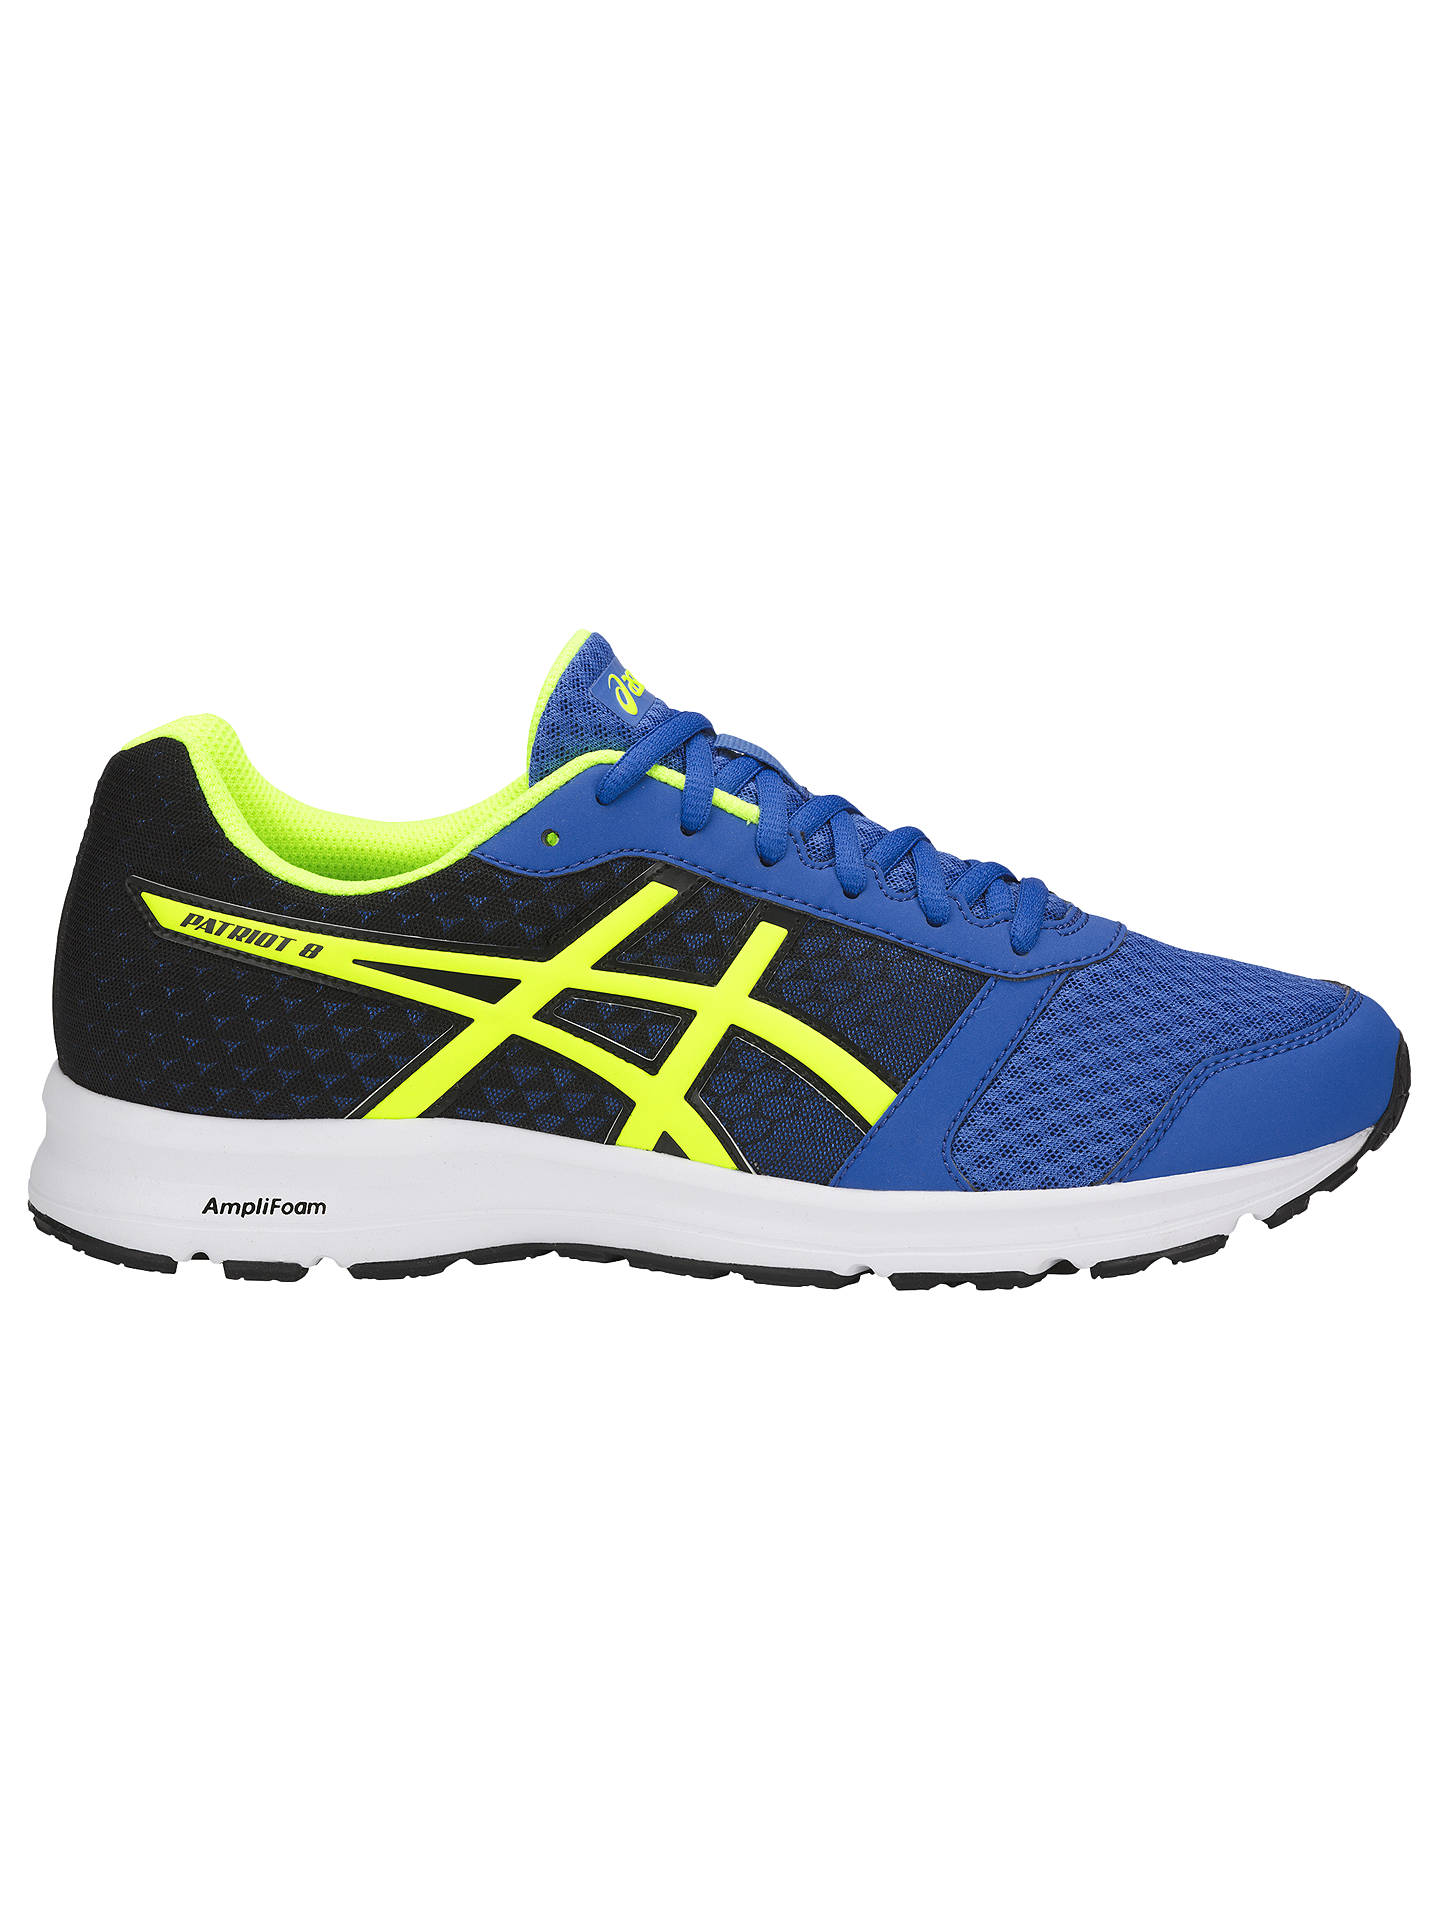 huge selection of 1be6e 47429 Buy ASICS Patriot 9 Men s Running Shoes, Victoria Blue Yellow Black, 7 ...